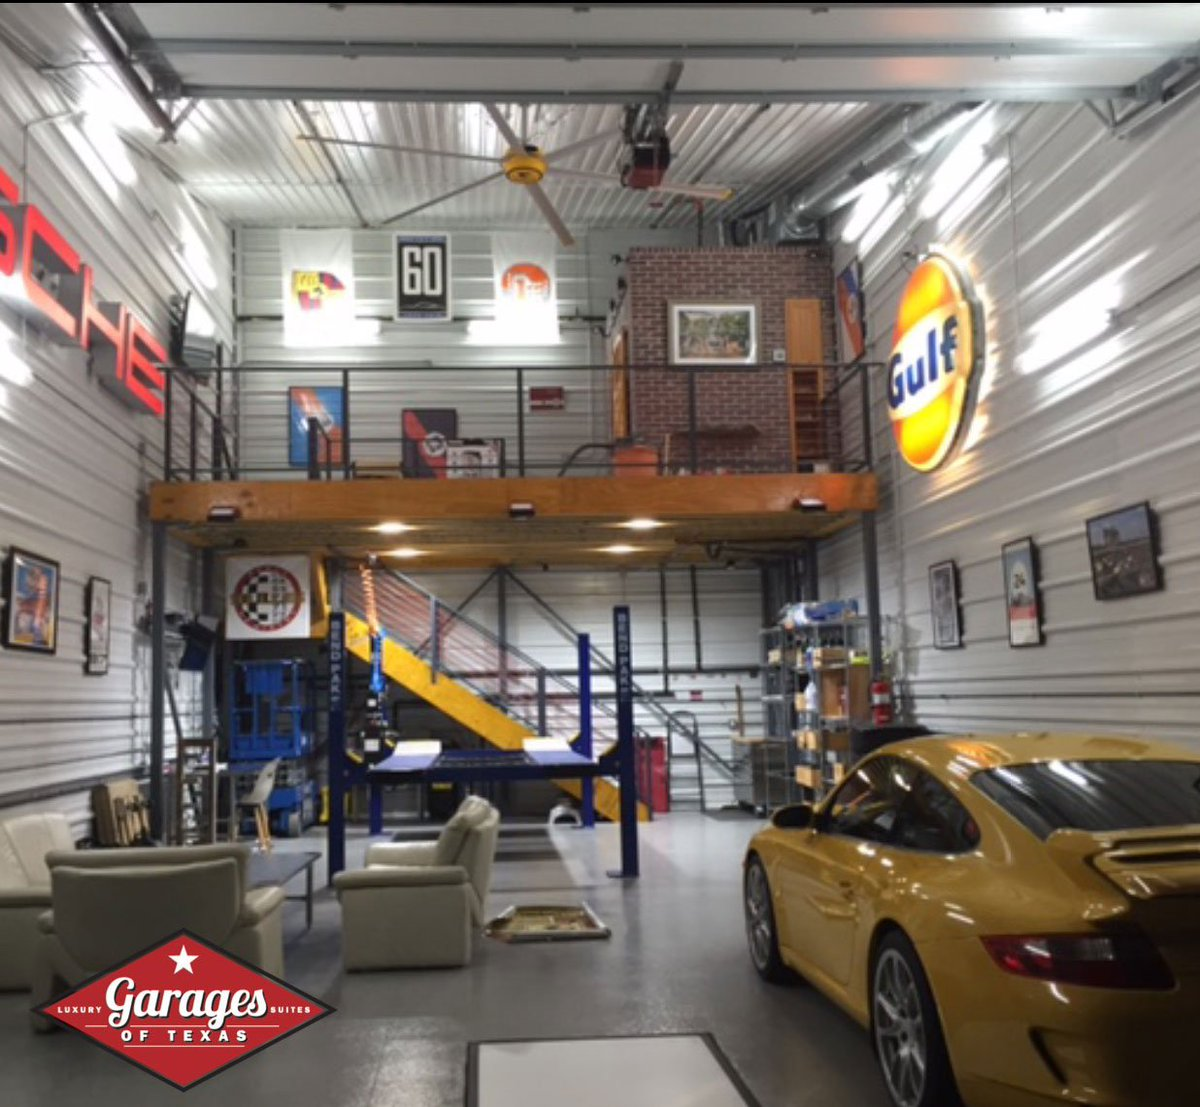 Garages Of Texas On Twitter Check Out The Mezzanine